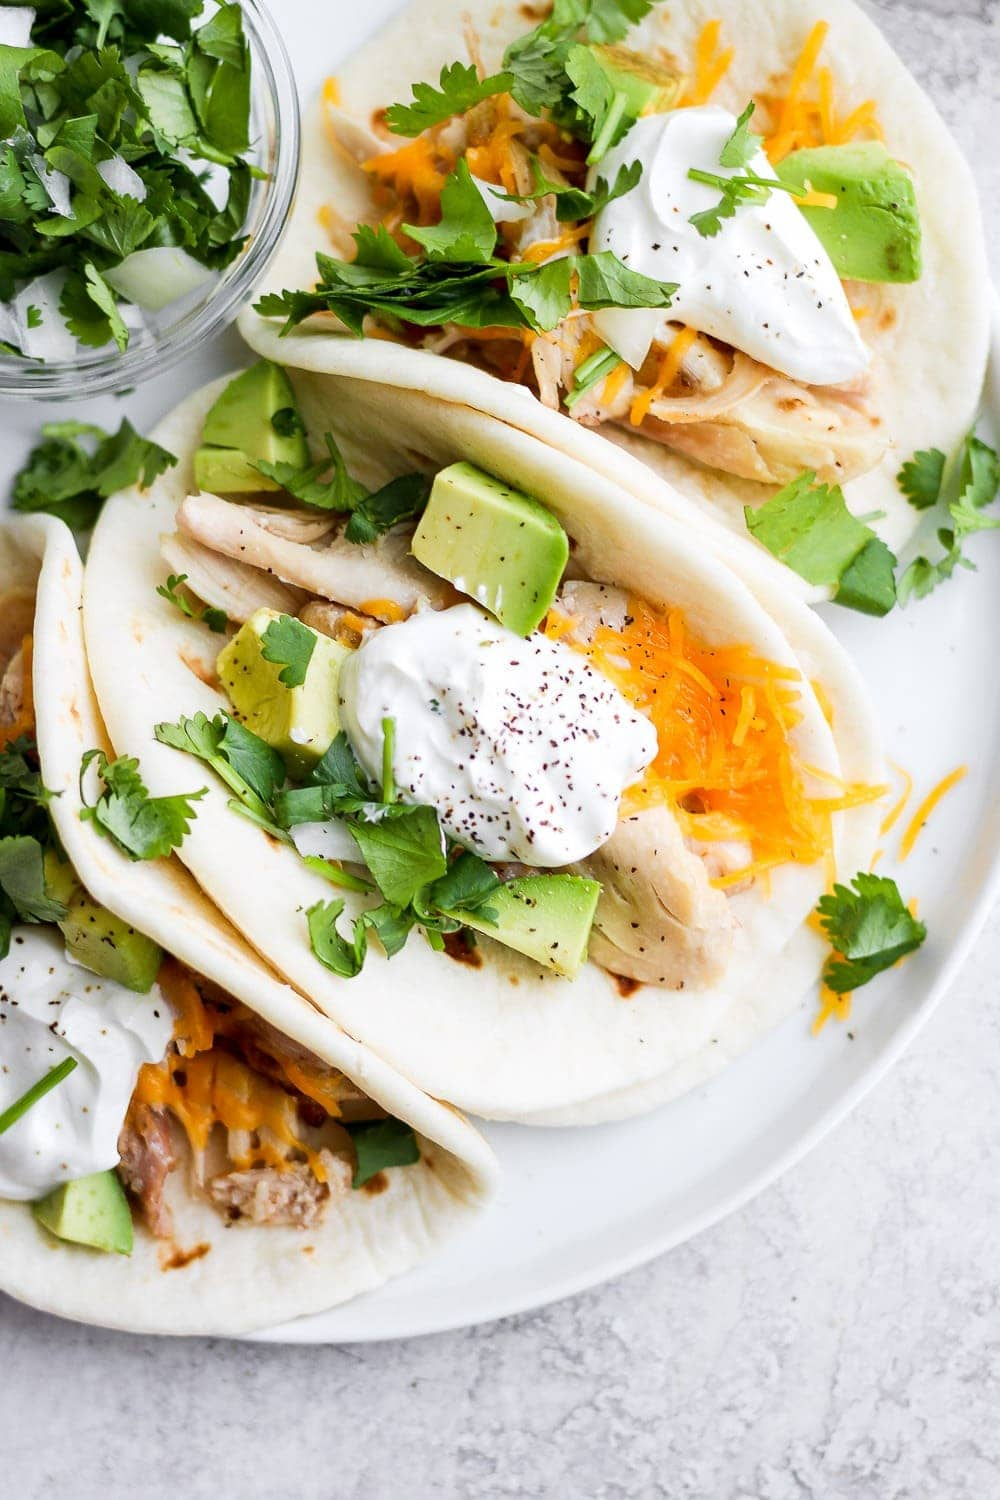 shredded chicken tacos on a plate and ready to be served